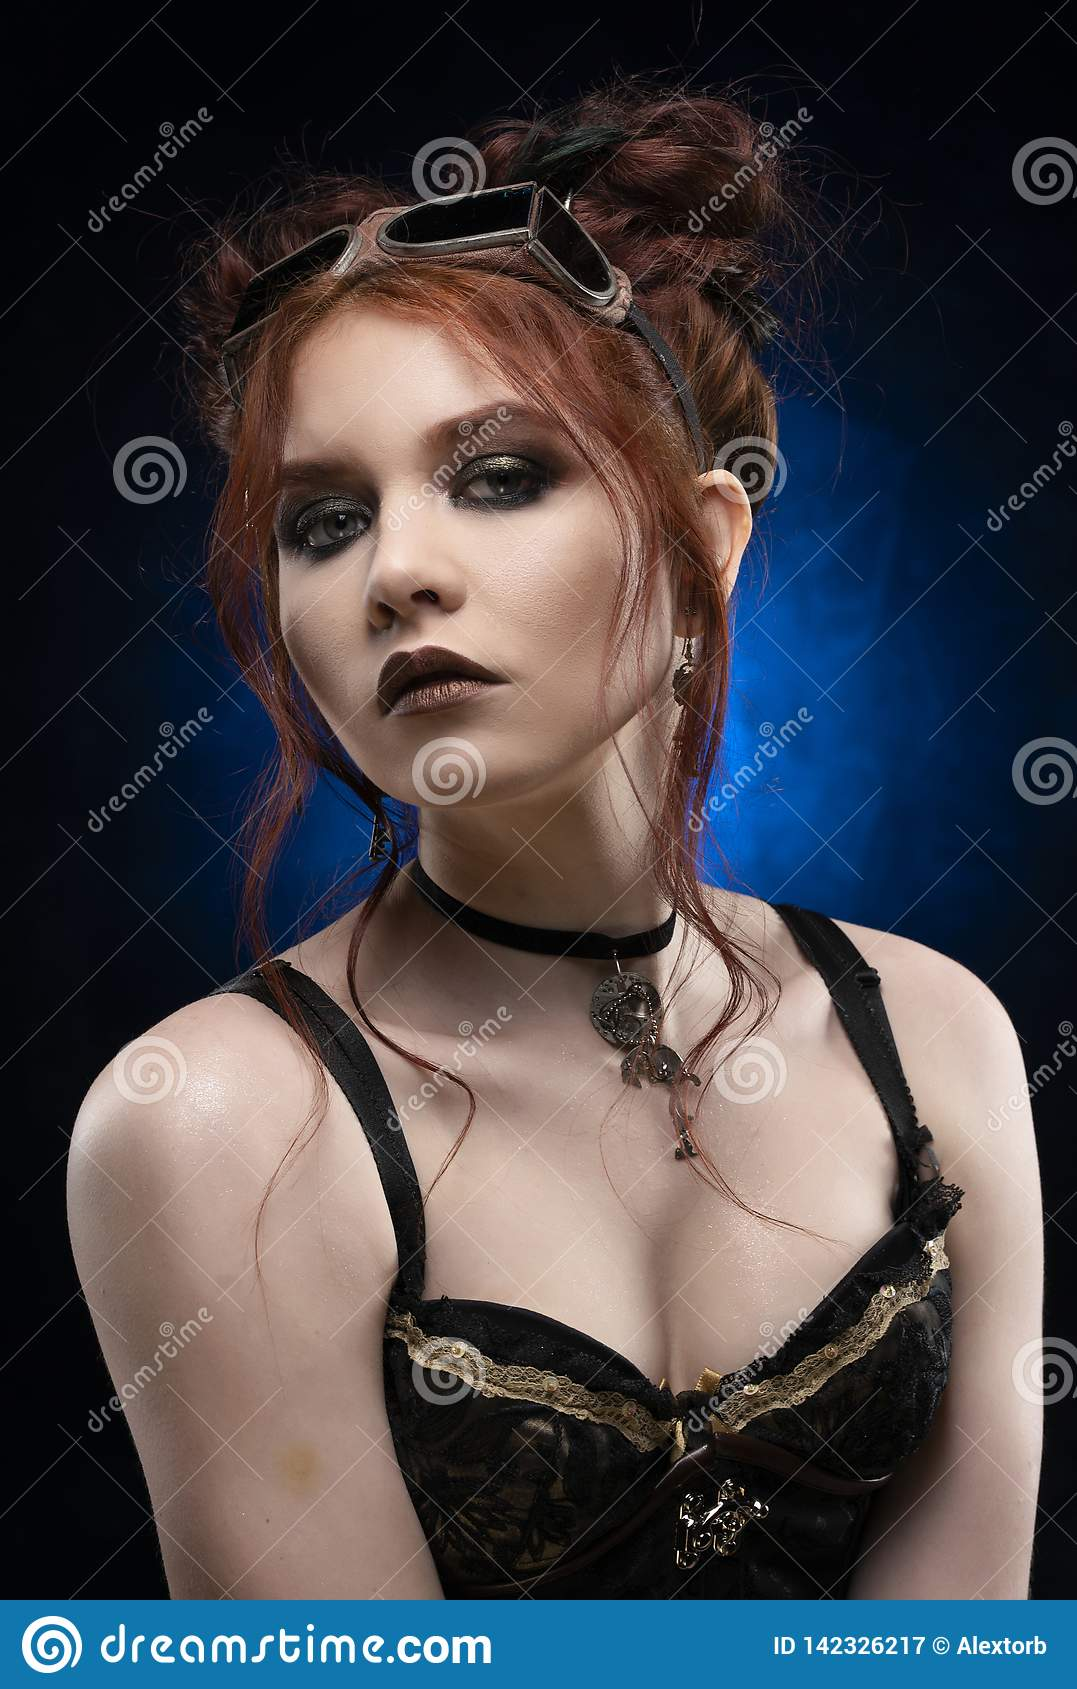 A beautiful redhead cosplayer girl wearing a Victorian-style steampunk costume with big breasts in a deep neckline. Portrait. Blue